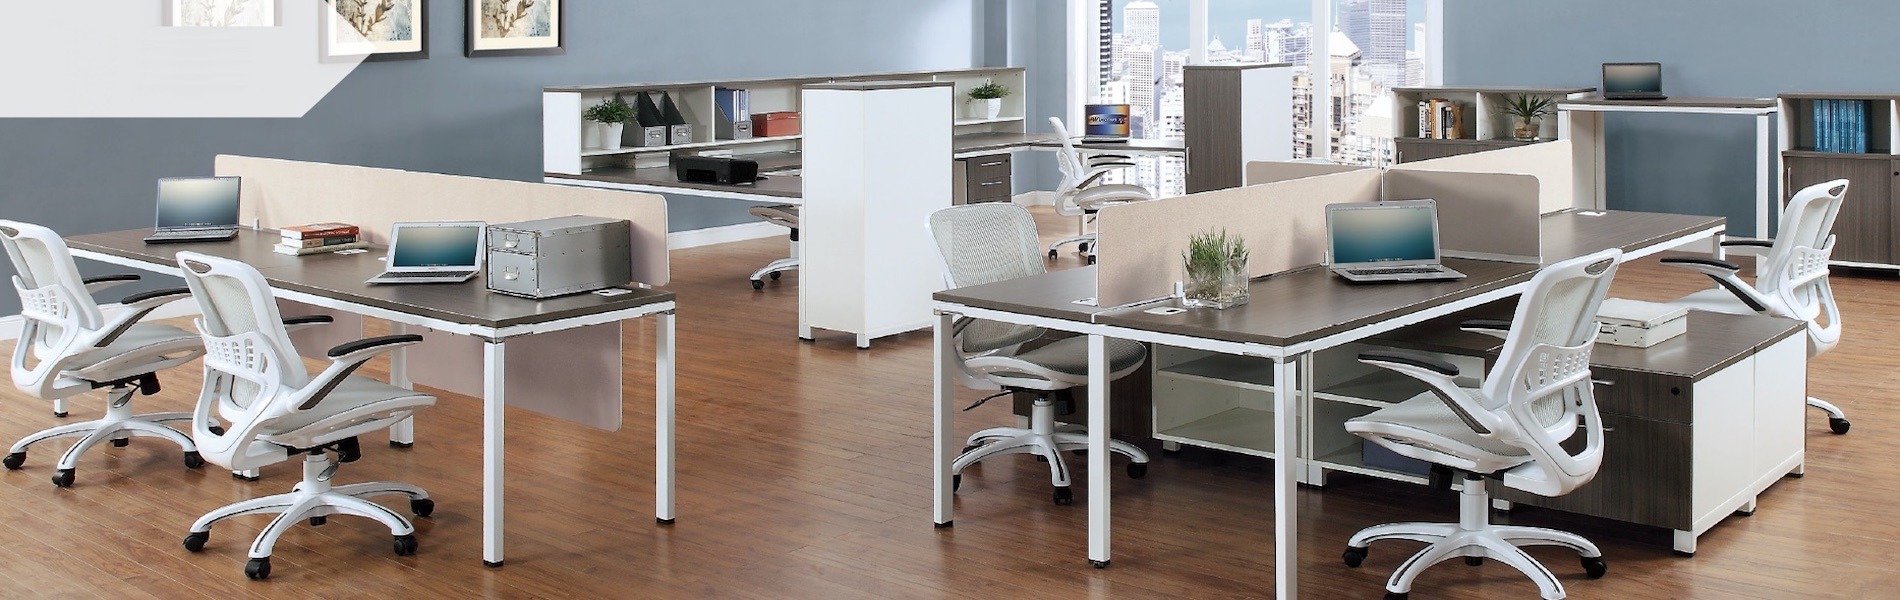 desking & benching systems